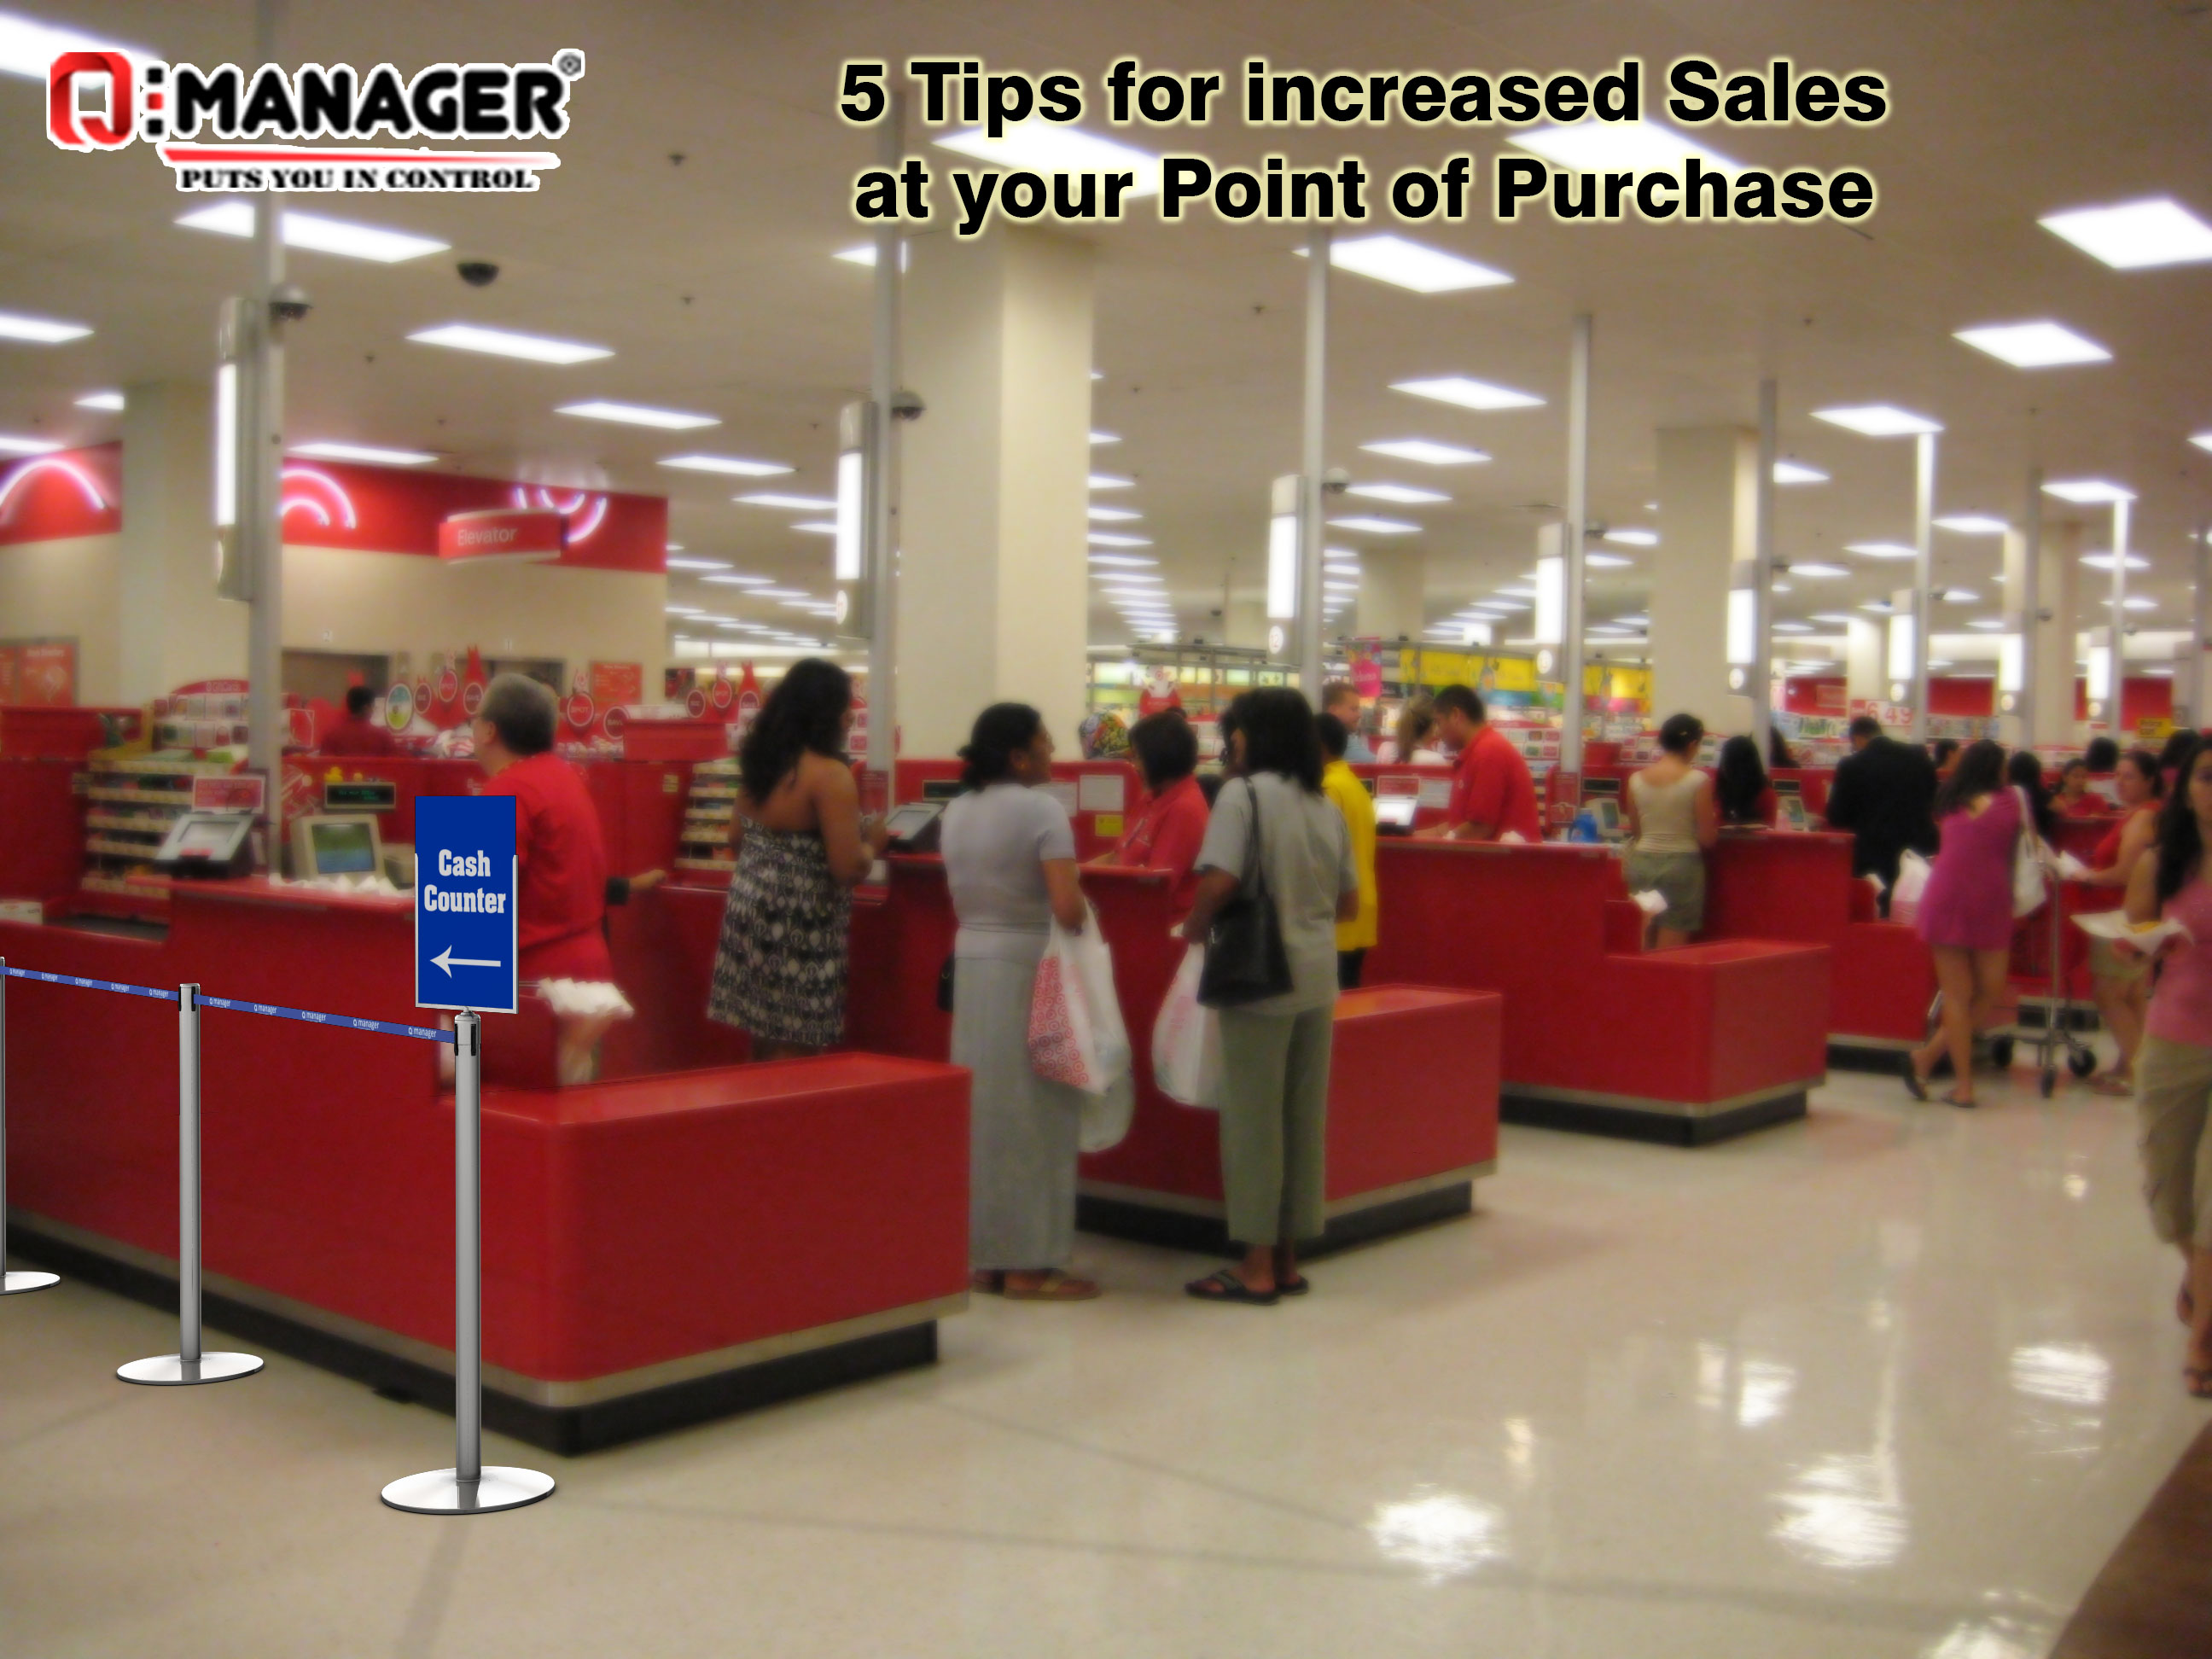 5 Tips for increased Sales at your Point of Purchase